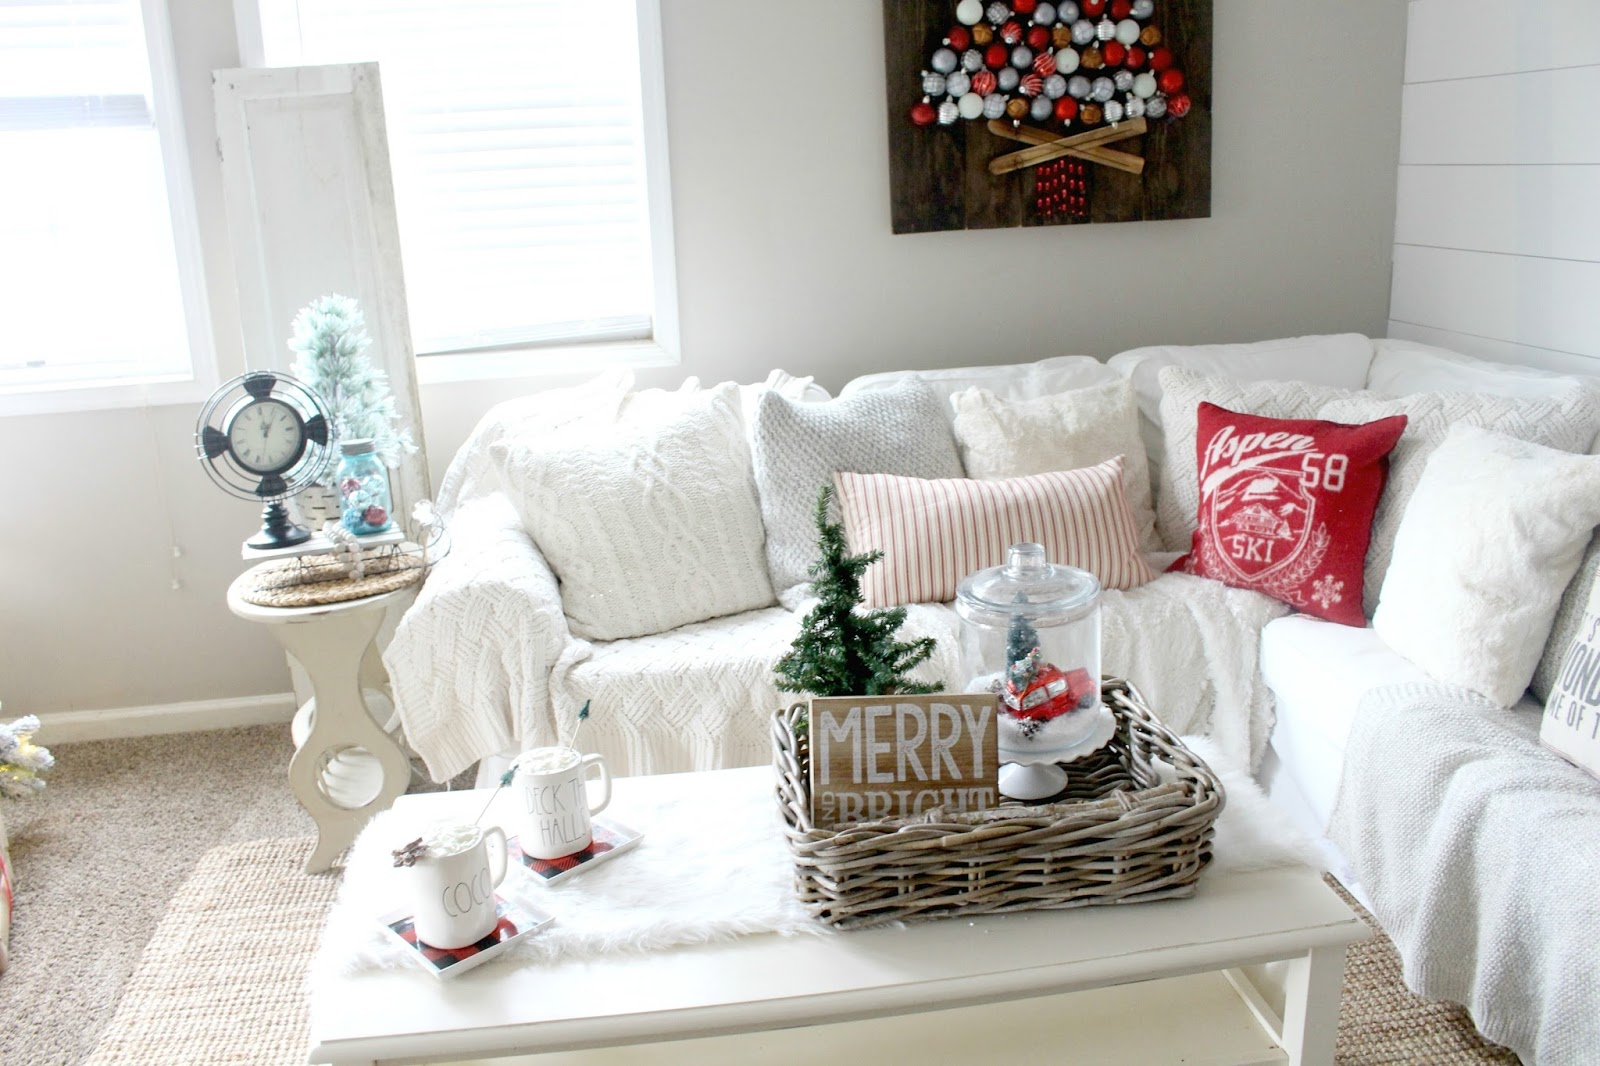 The Glam Farmhouse: How To Decorate Your Coffee Table for ...